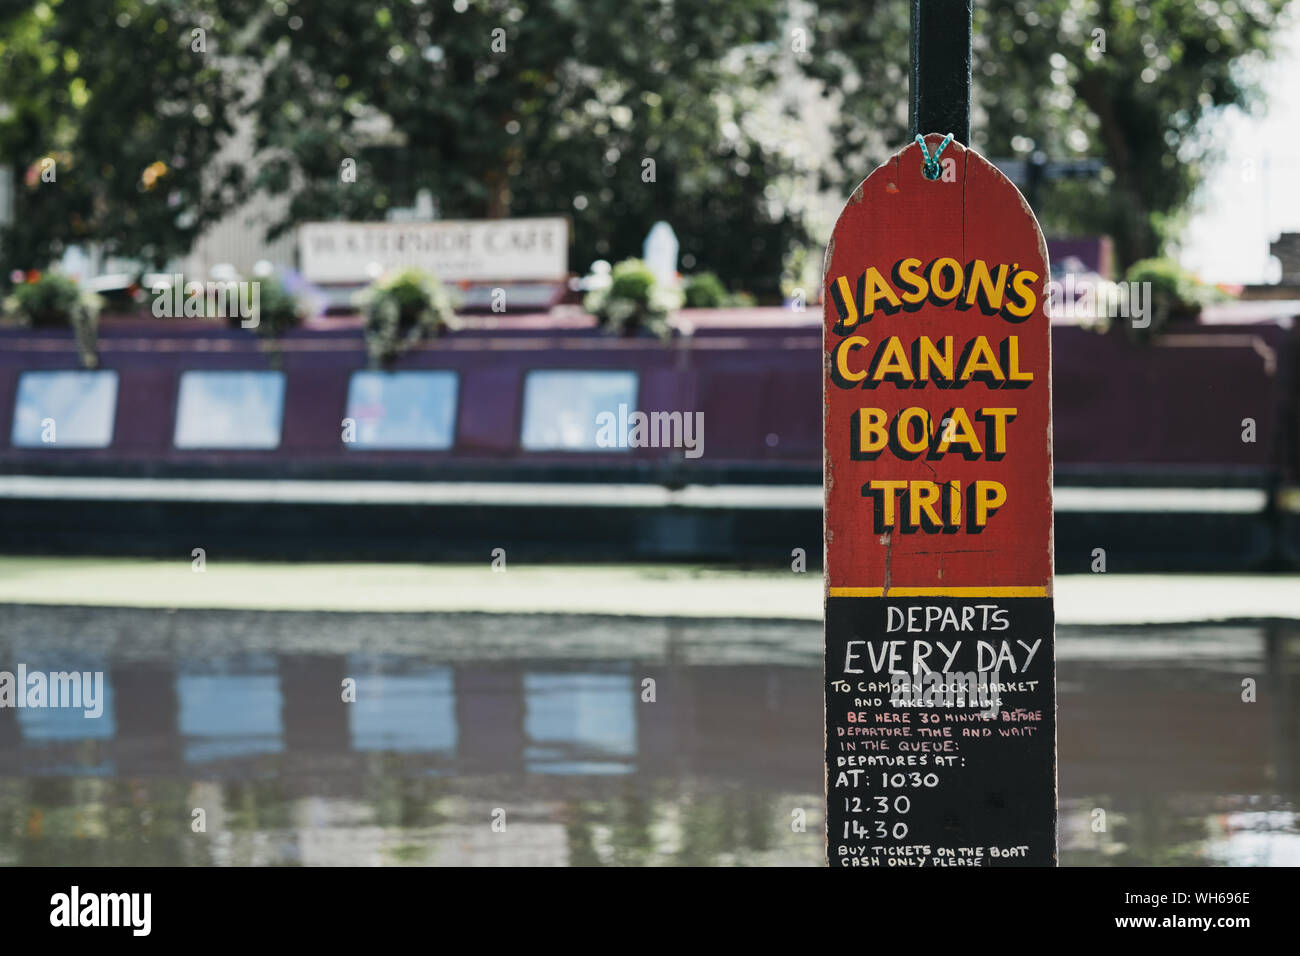 London, UK - July 18, 2019: Jasons Canal Boat Trip sign on Regents Canal in Little Venice, London, a tranquil area of the city where the Grand Union a Stock Photo